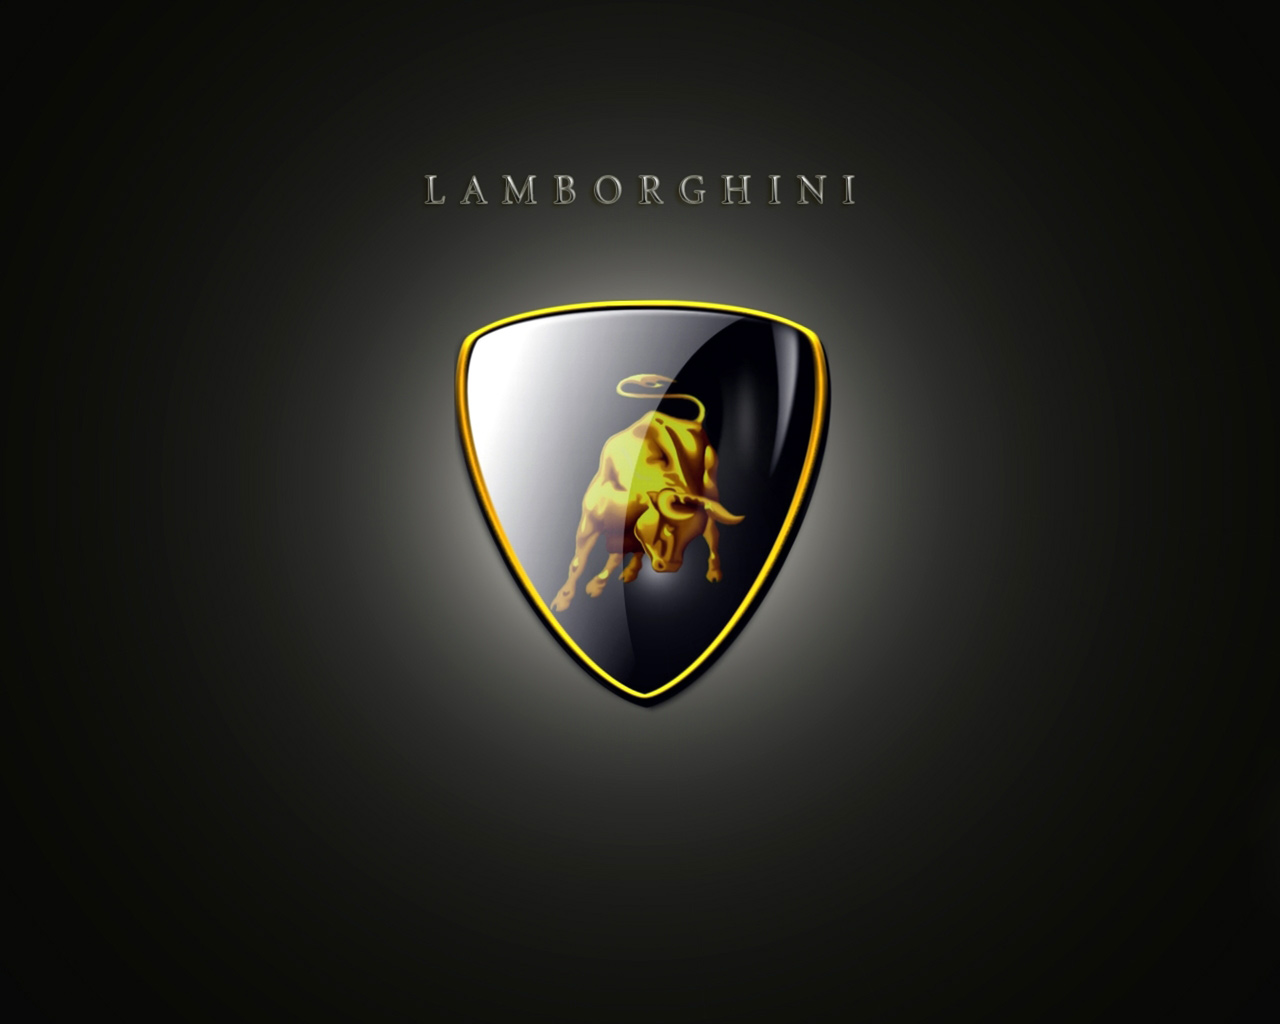 On the lamborghini logo identical